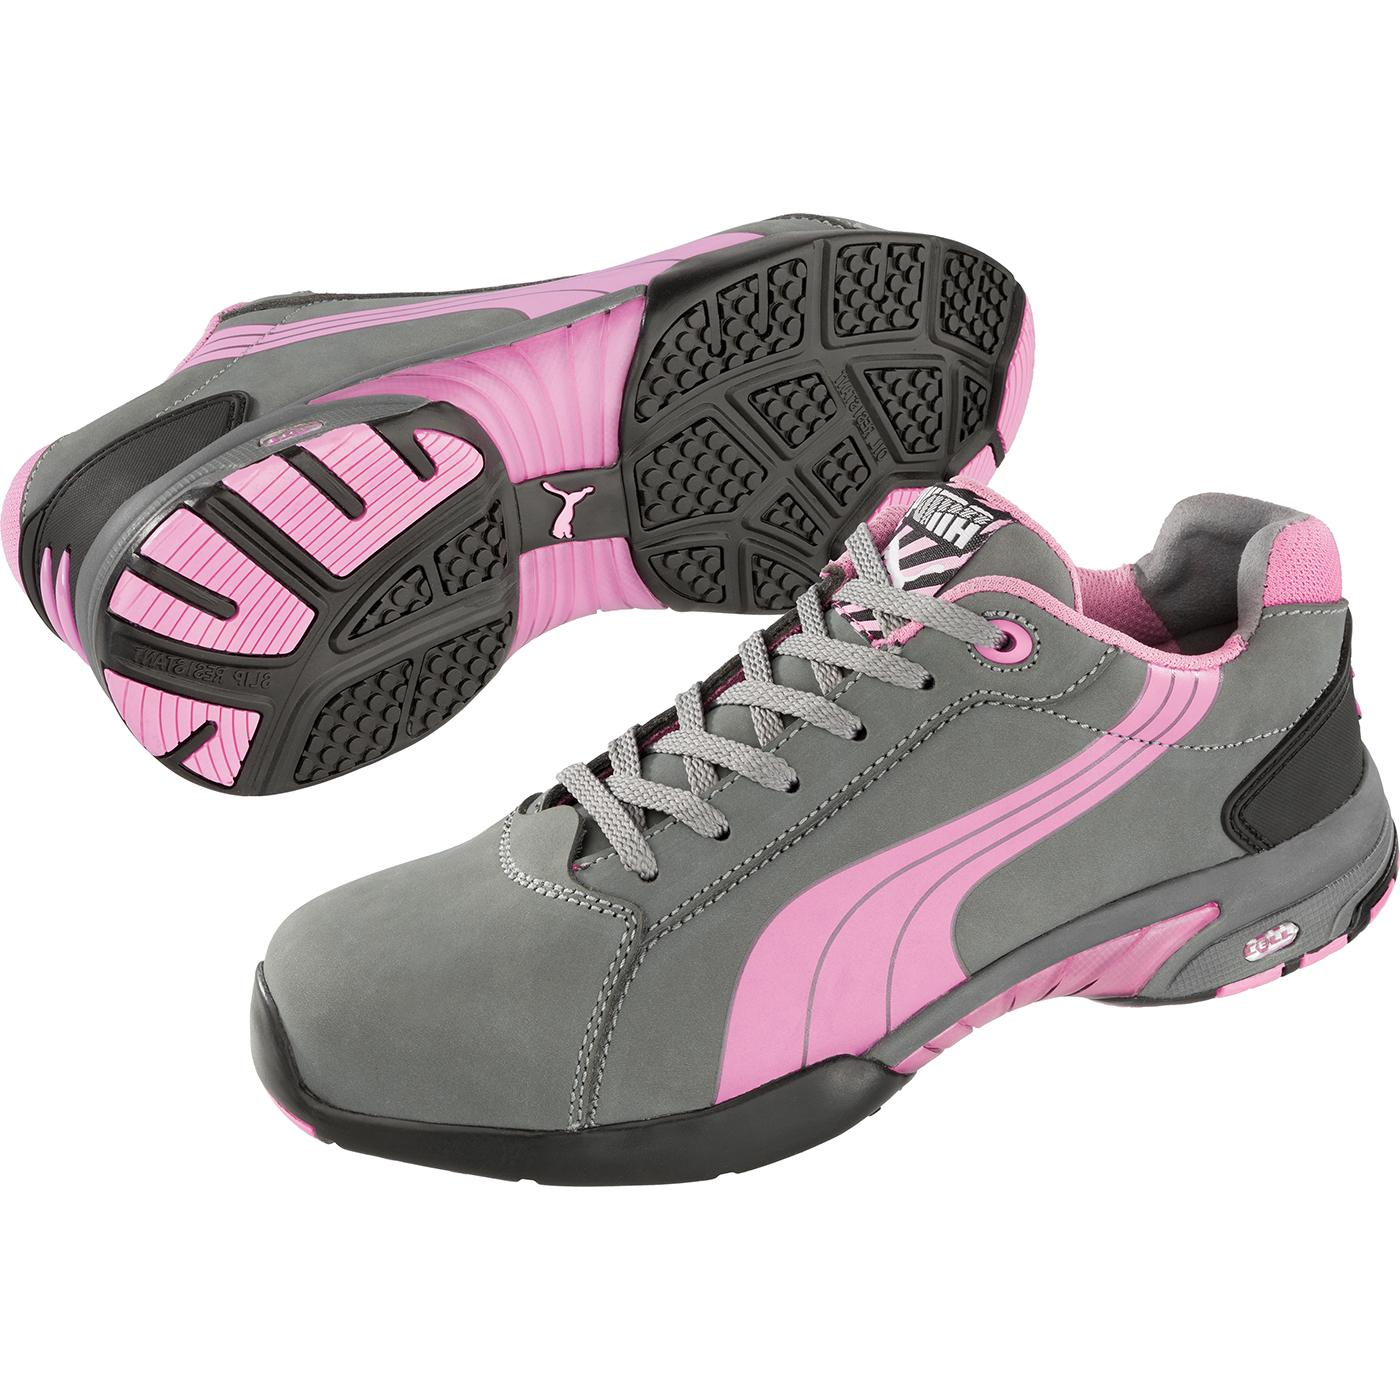 e82a0cc9345 Images. Puma Miss Safety Balance Women s Steel Toe Static-Dissipative Work Athletic  Shoe ...